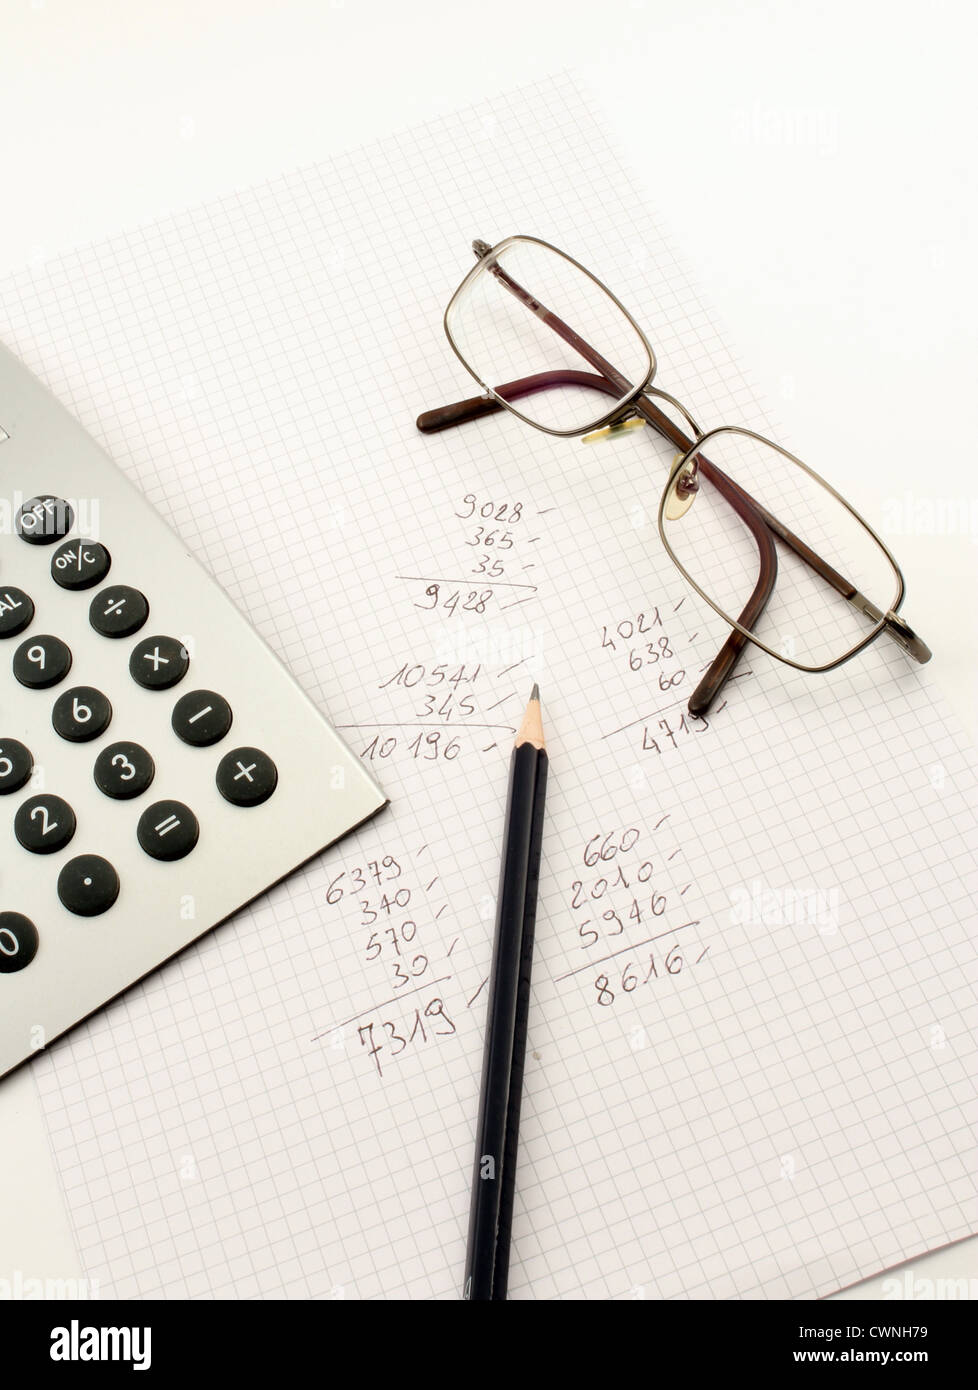 Addition of a written paper, a calculator and pen. - Stock Image